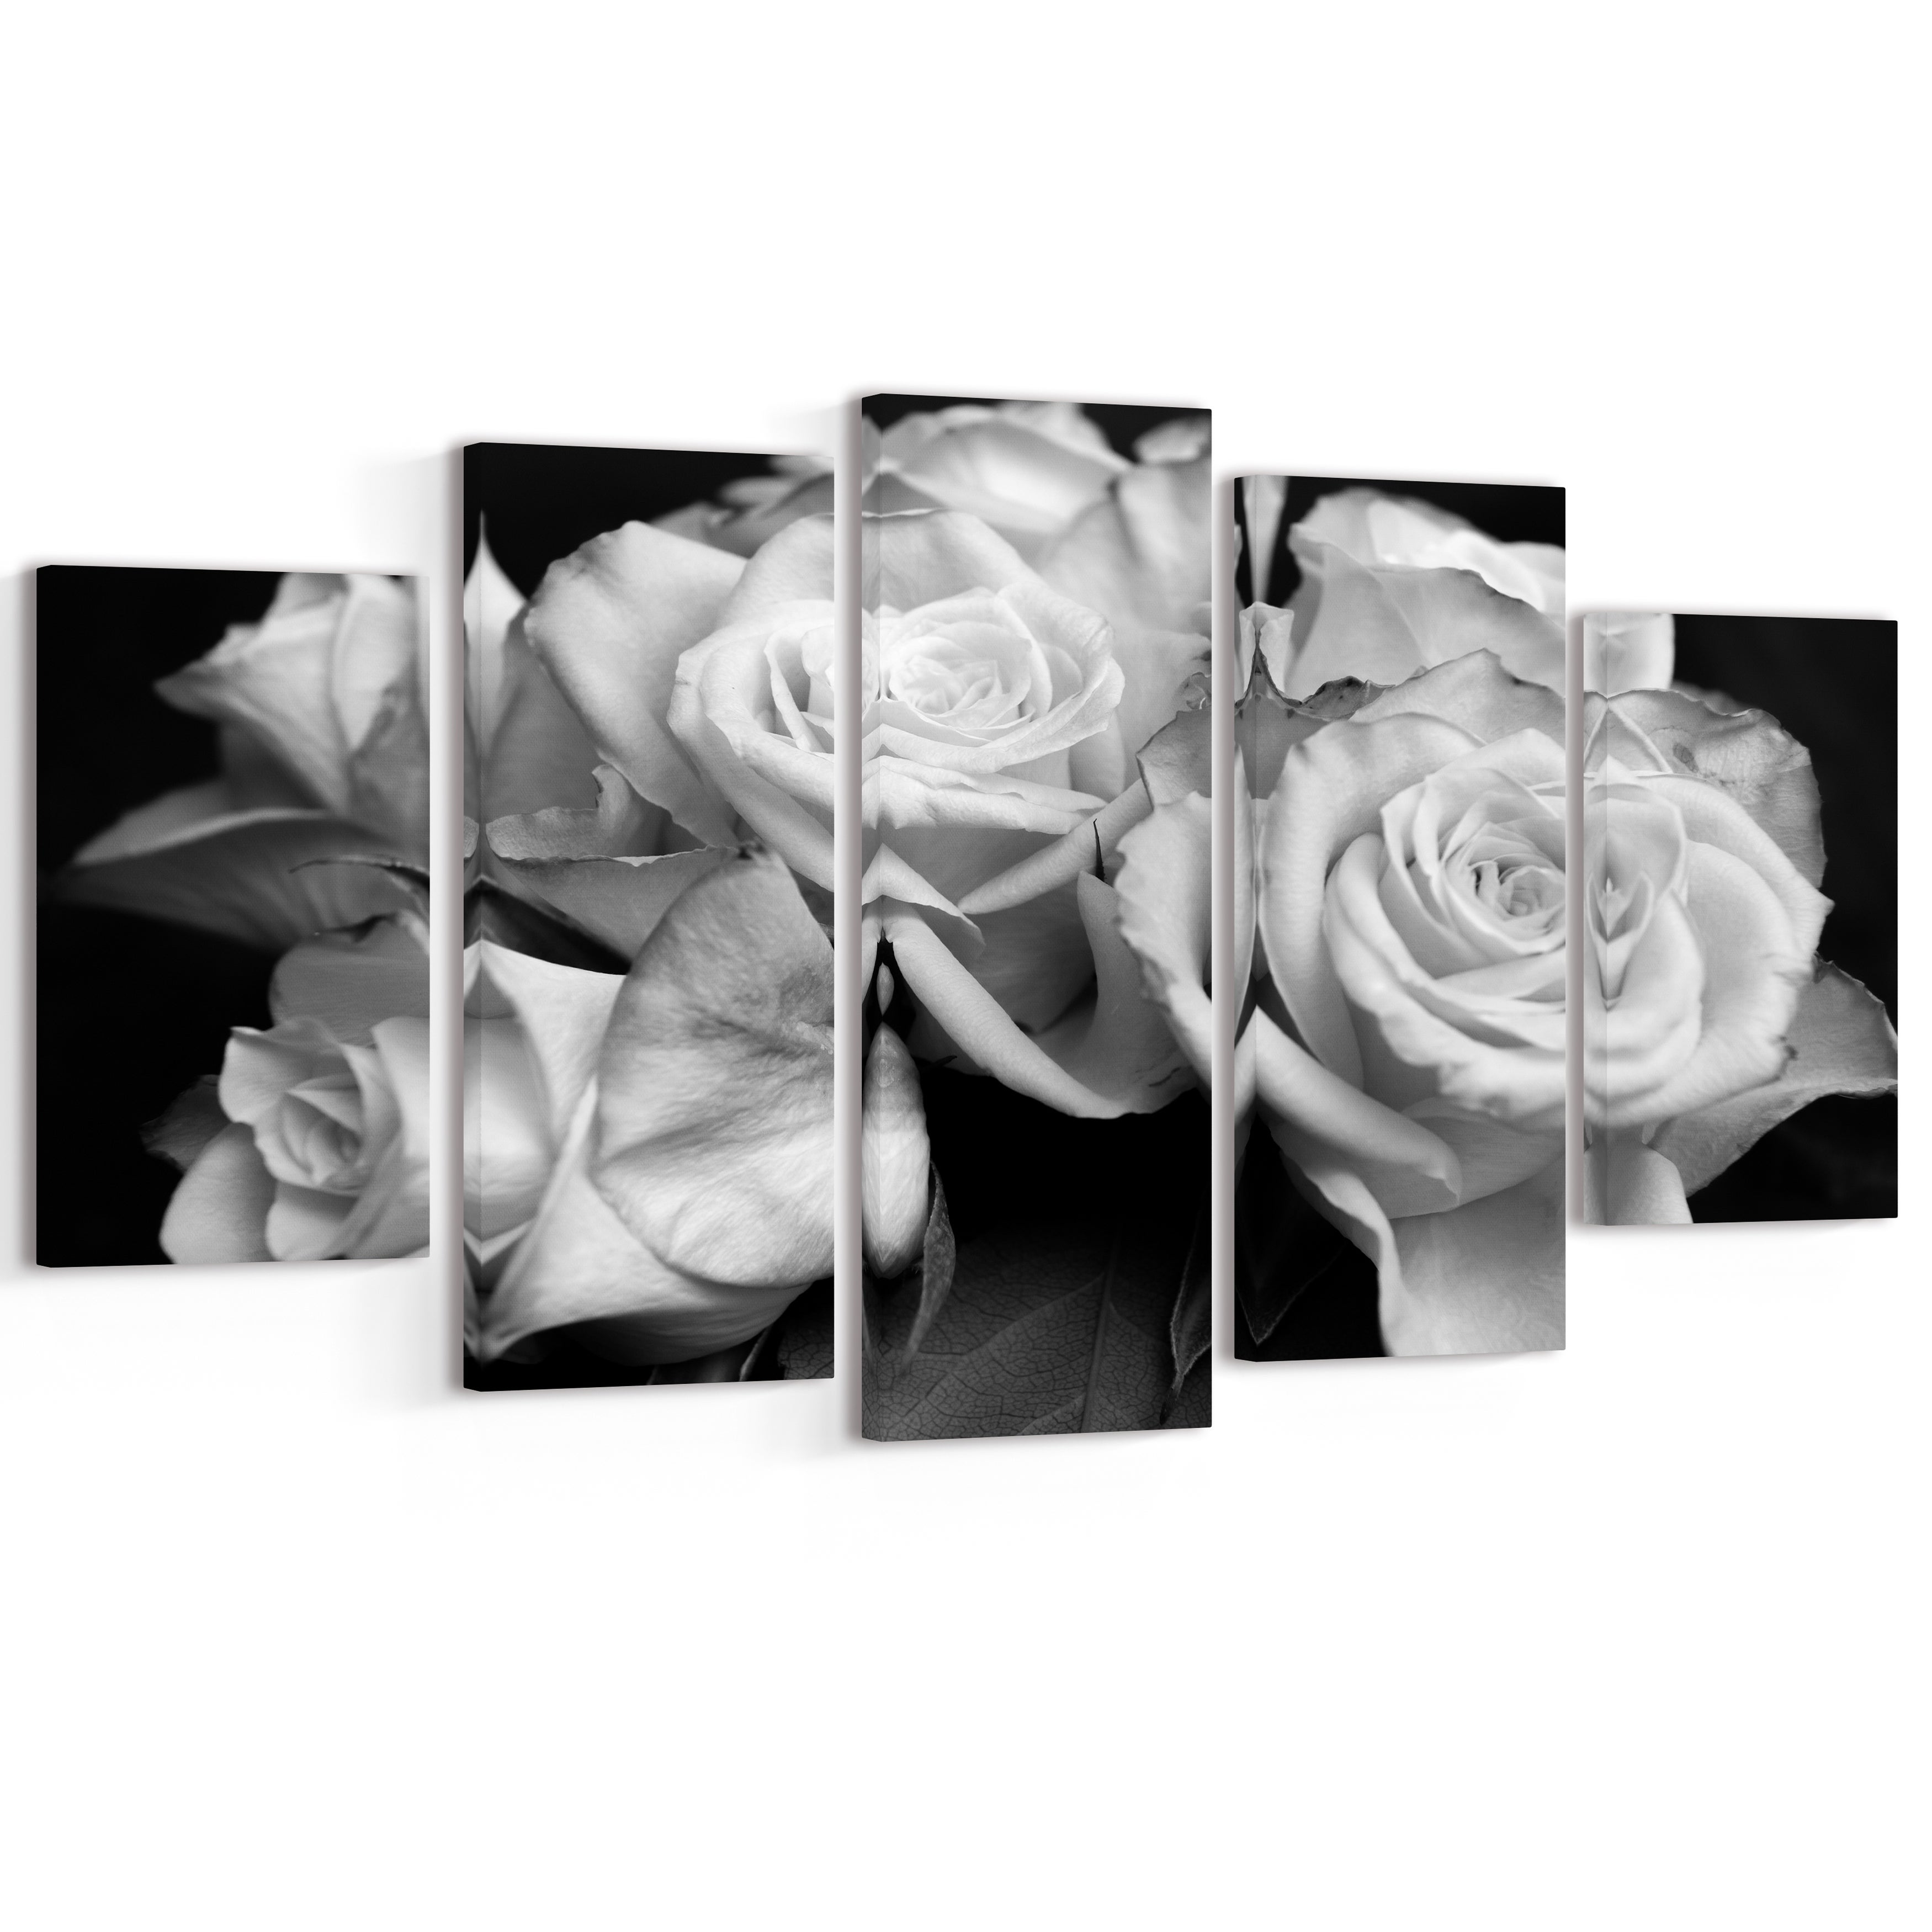 Shop Bunch Of Roses Black And White Floral Canvas Art Print On